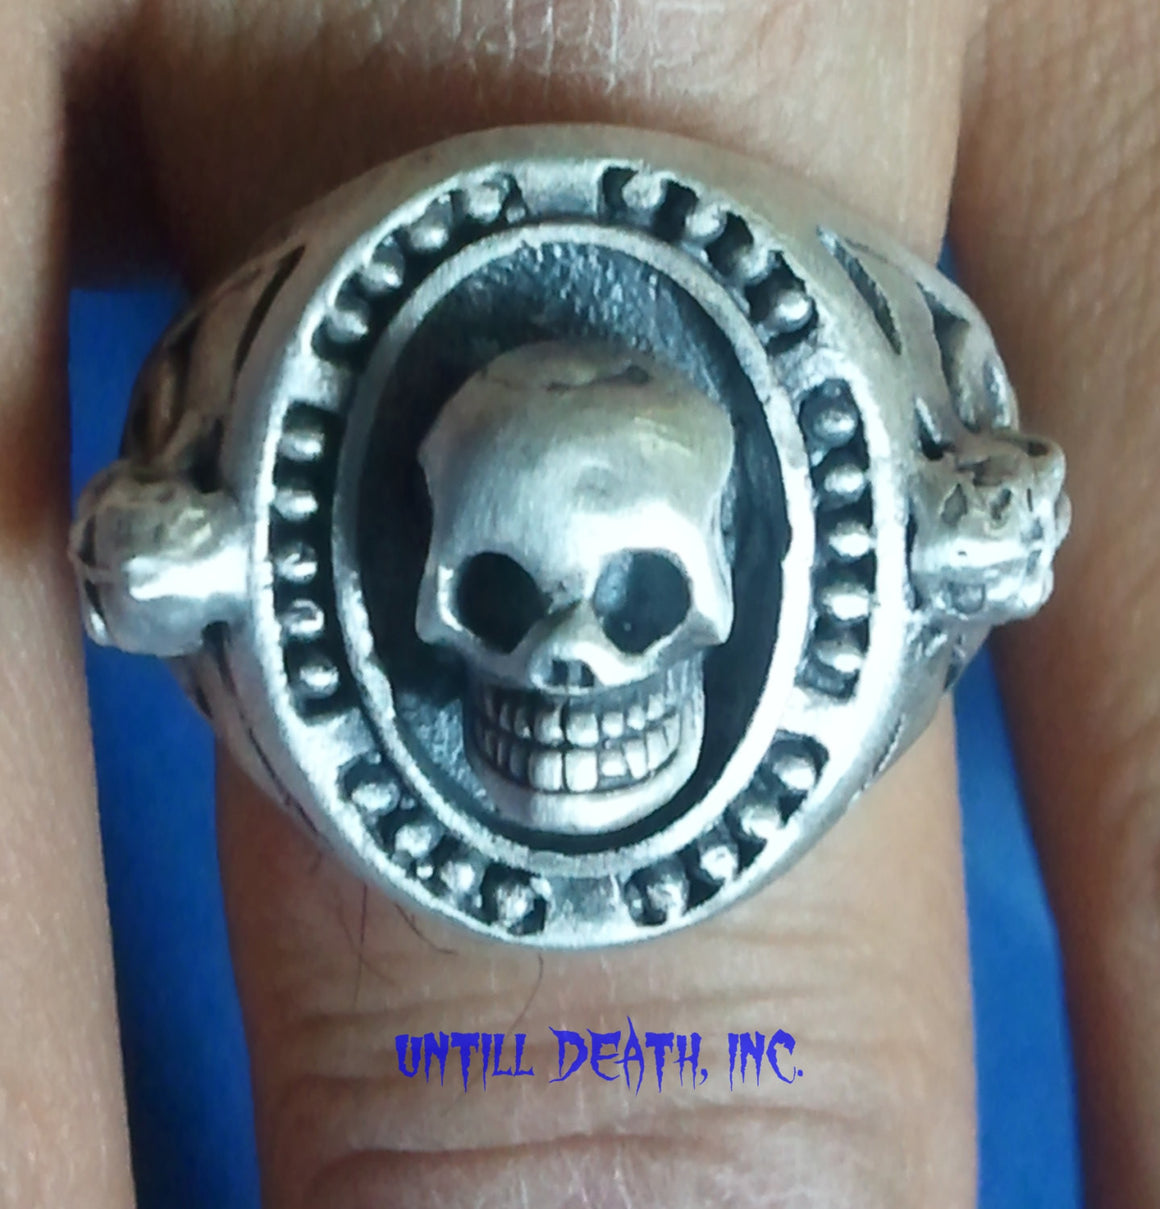 Memento Mori Beaded Skull Ring With Skull side accents 925 Sterling Silver-UDINC0030